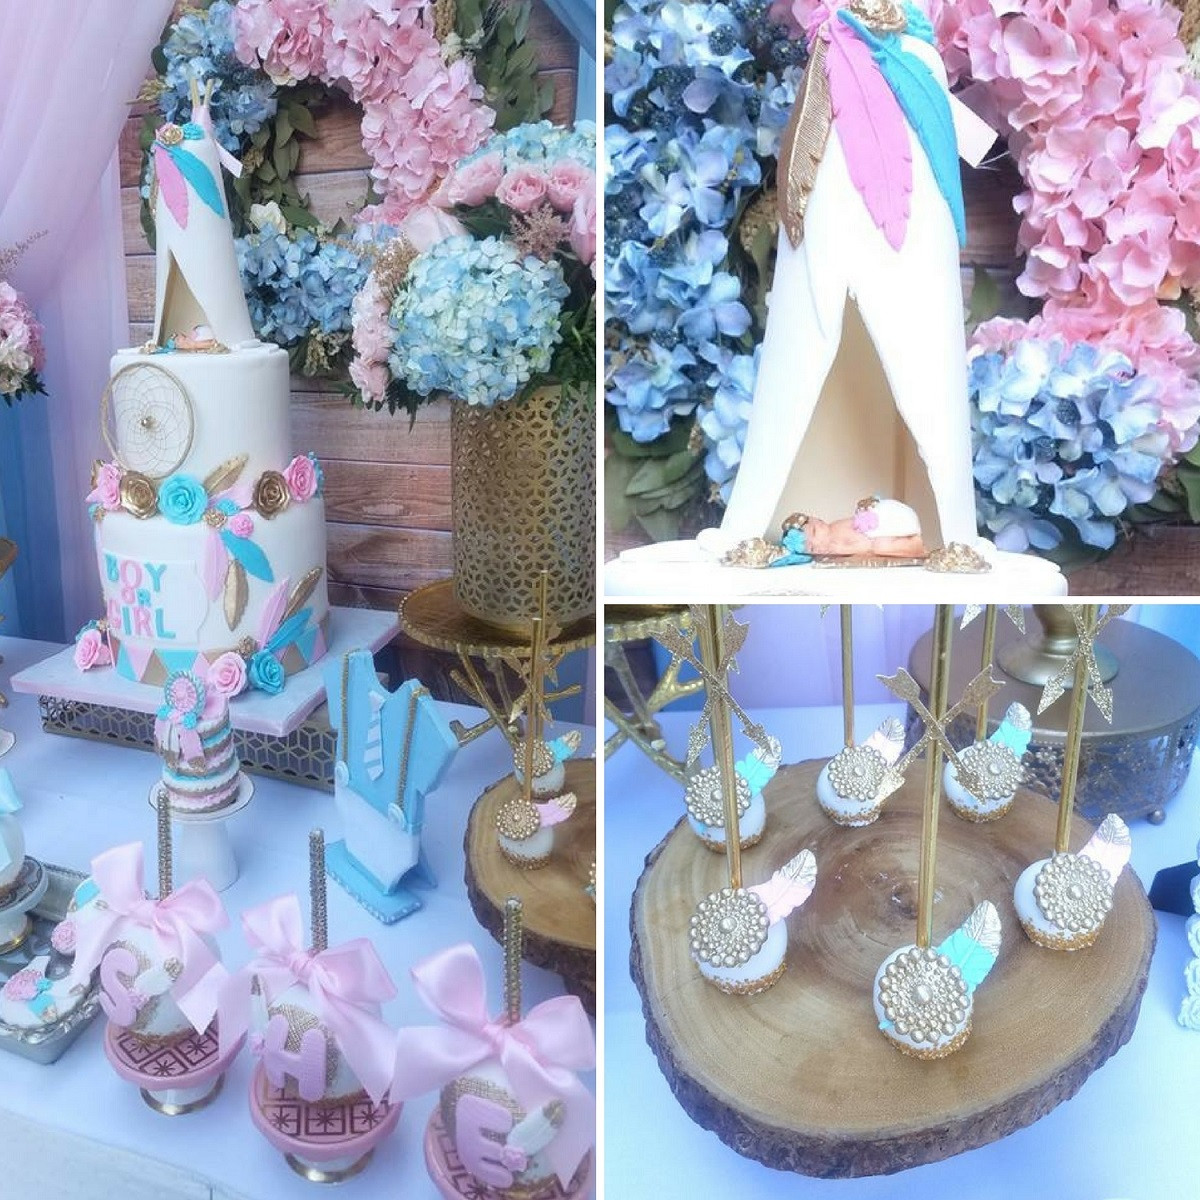 Best Gender Reveal Party Ideas  Boho Gender Reveal Party Baby Shower Ideas Themes Games